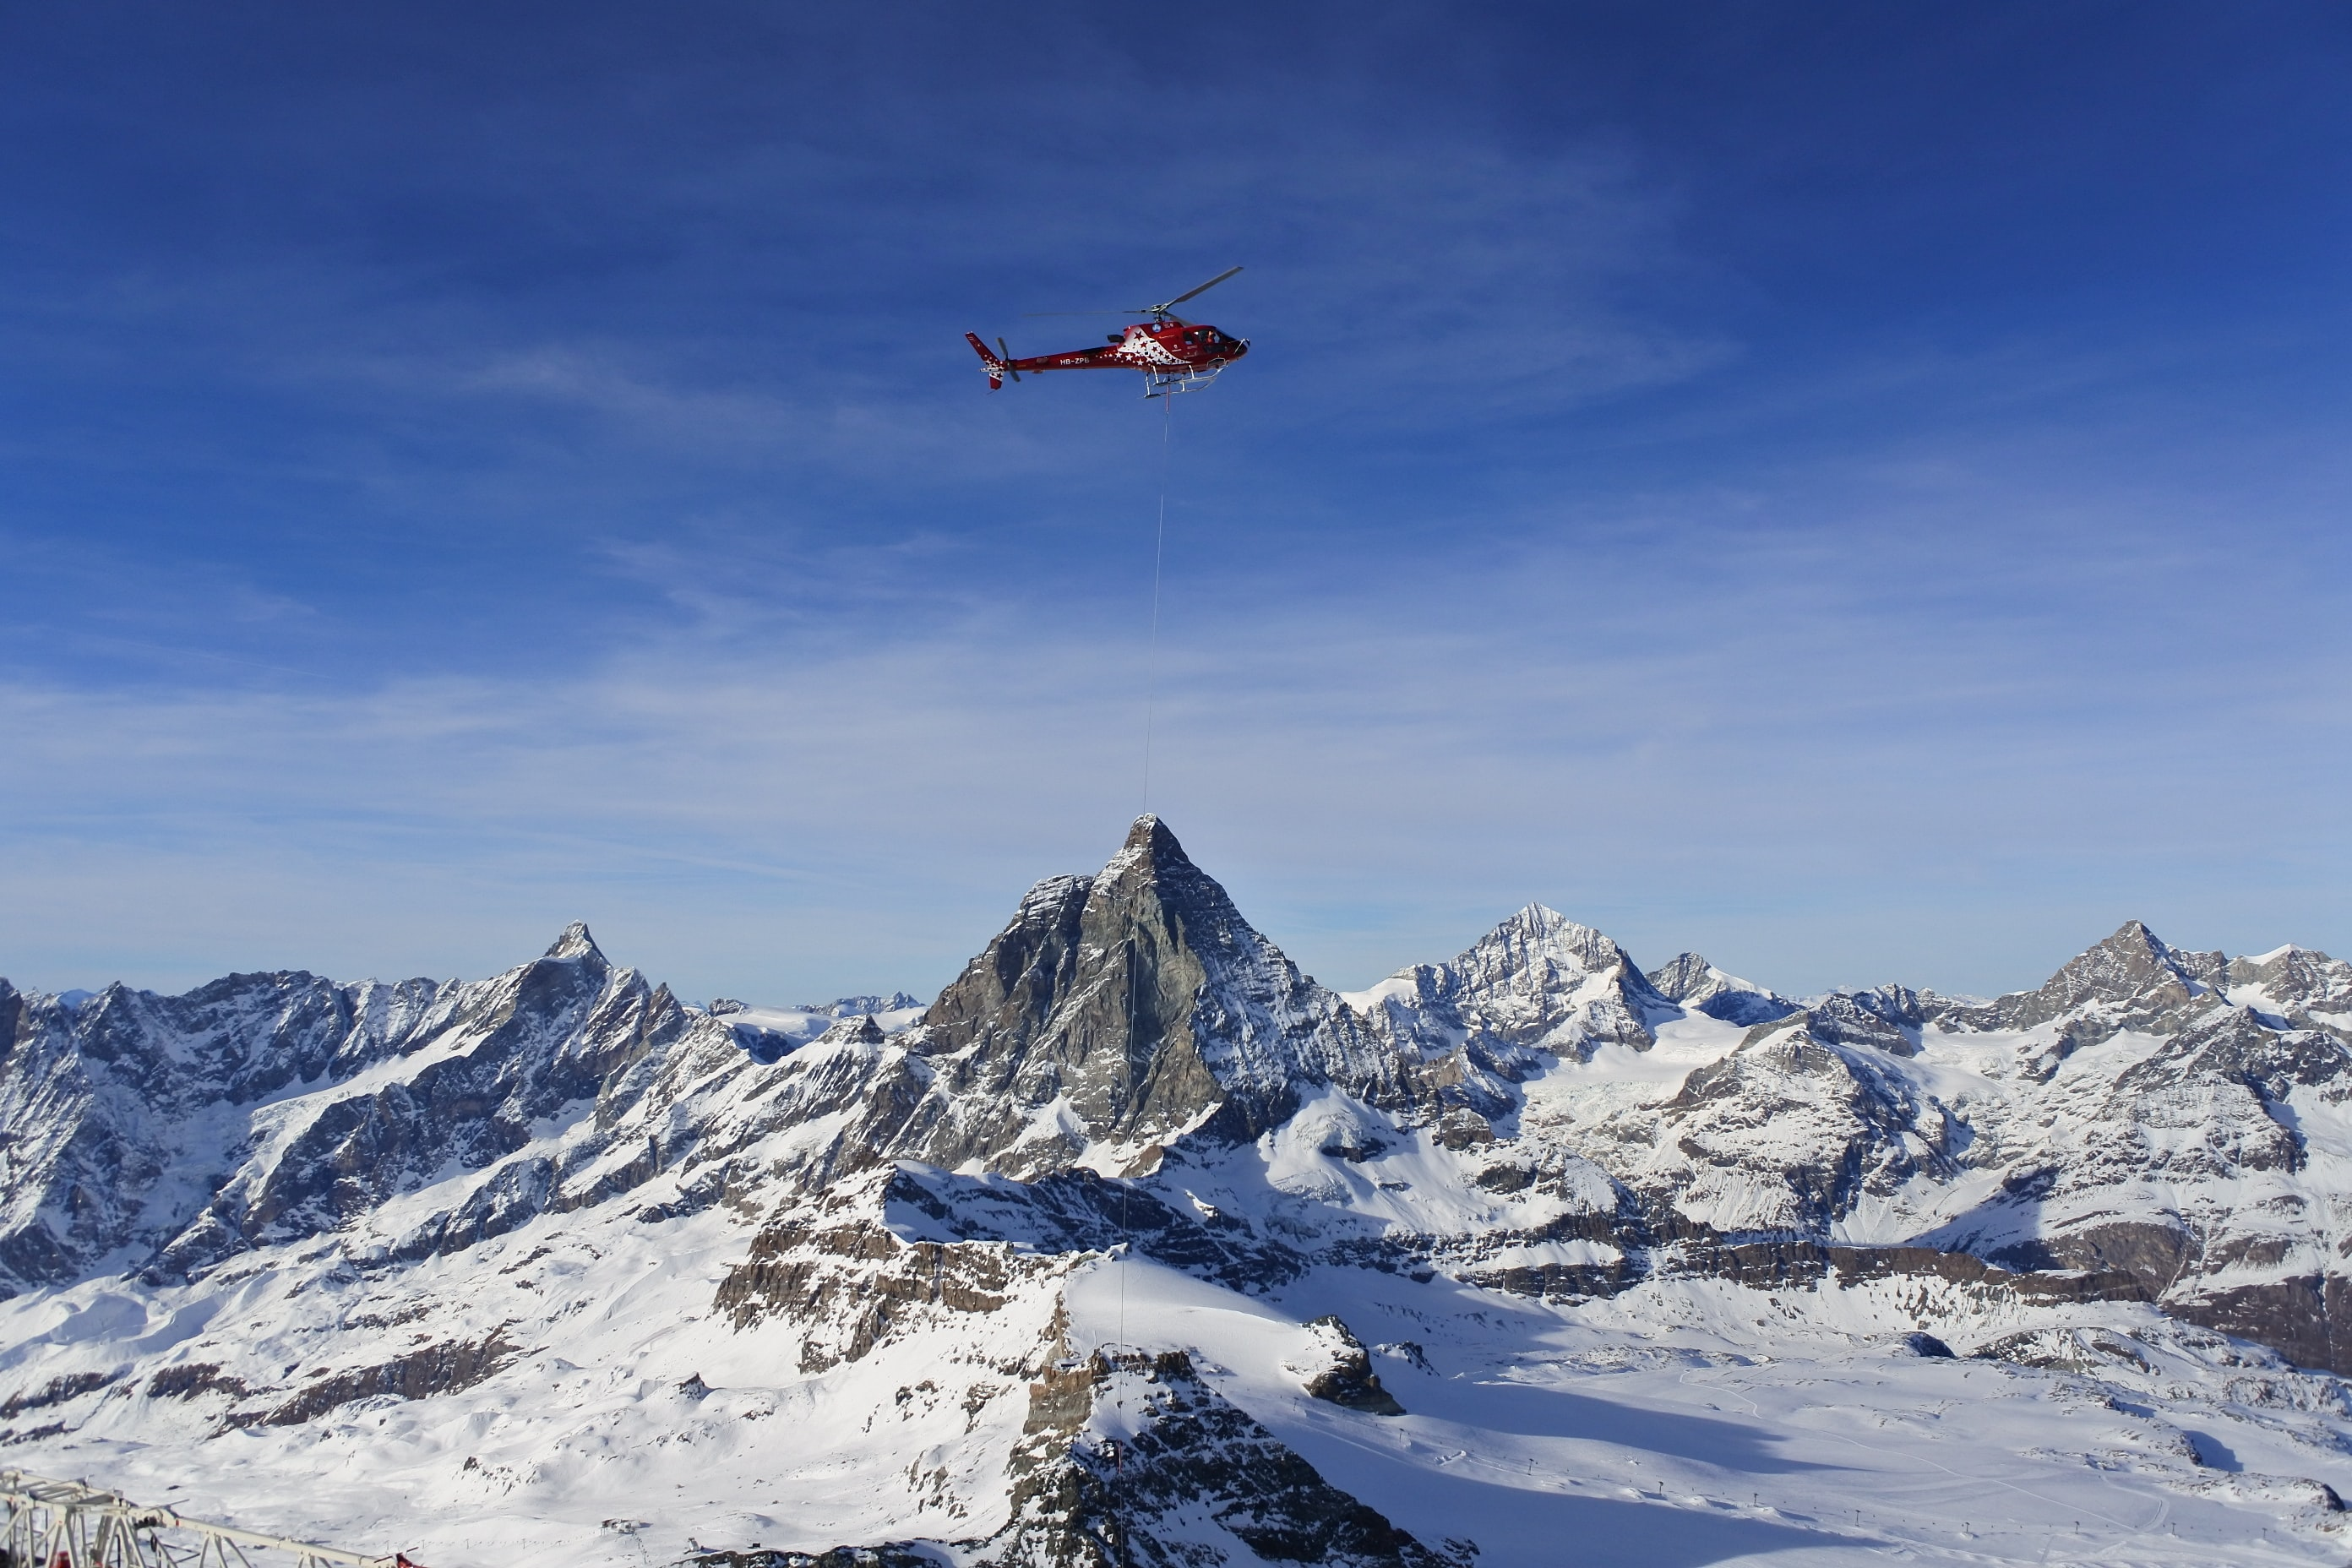 A rescue helicopter with a rescue hoist in the air above snowy mountains